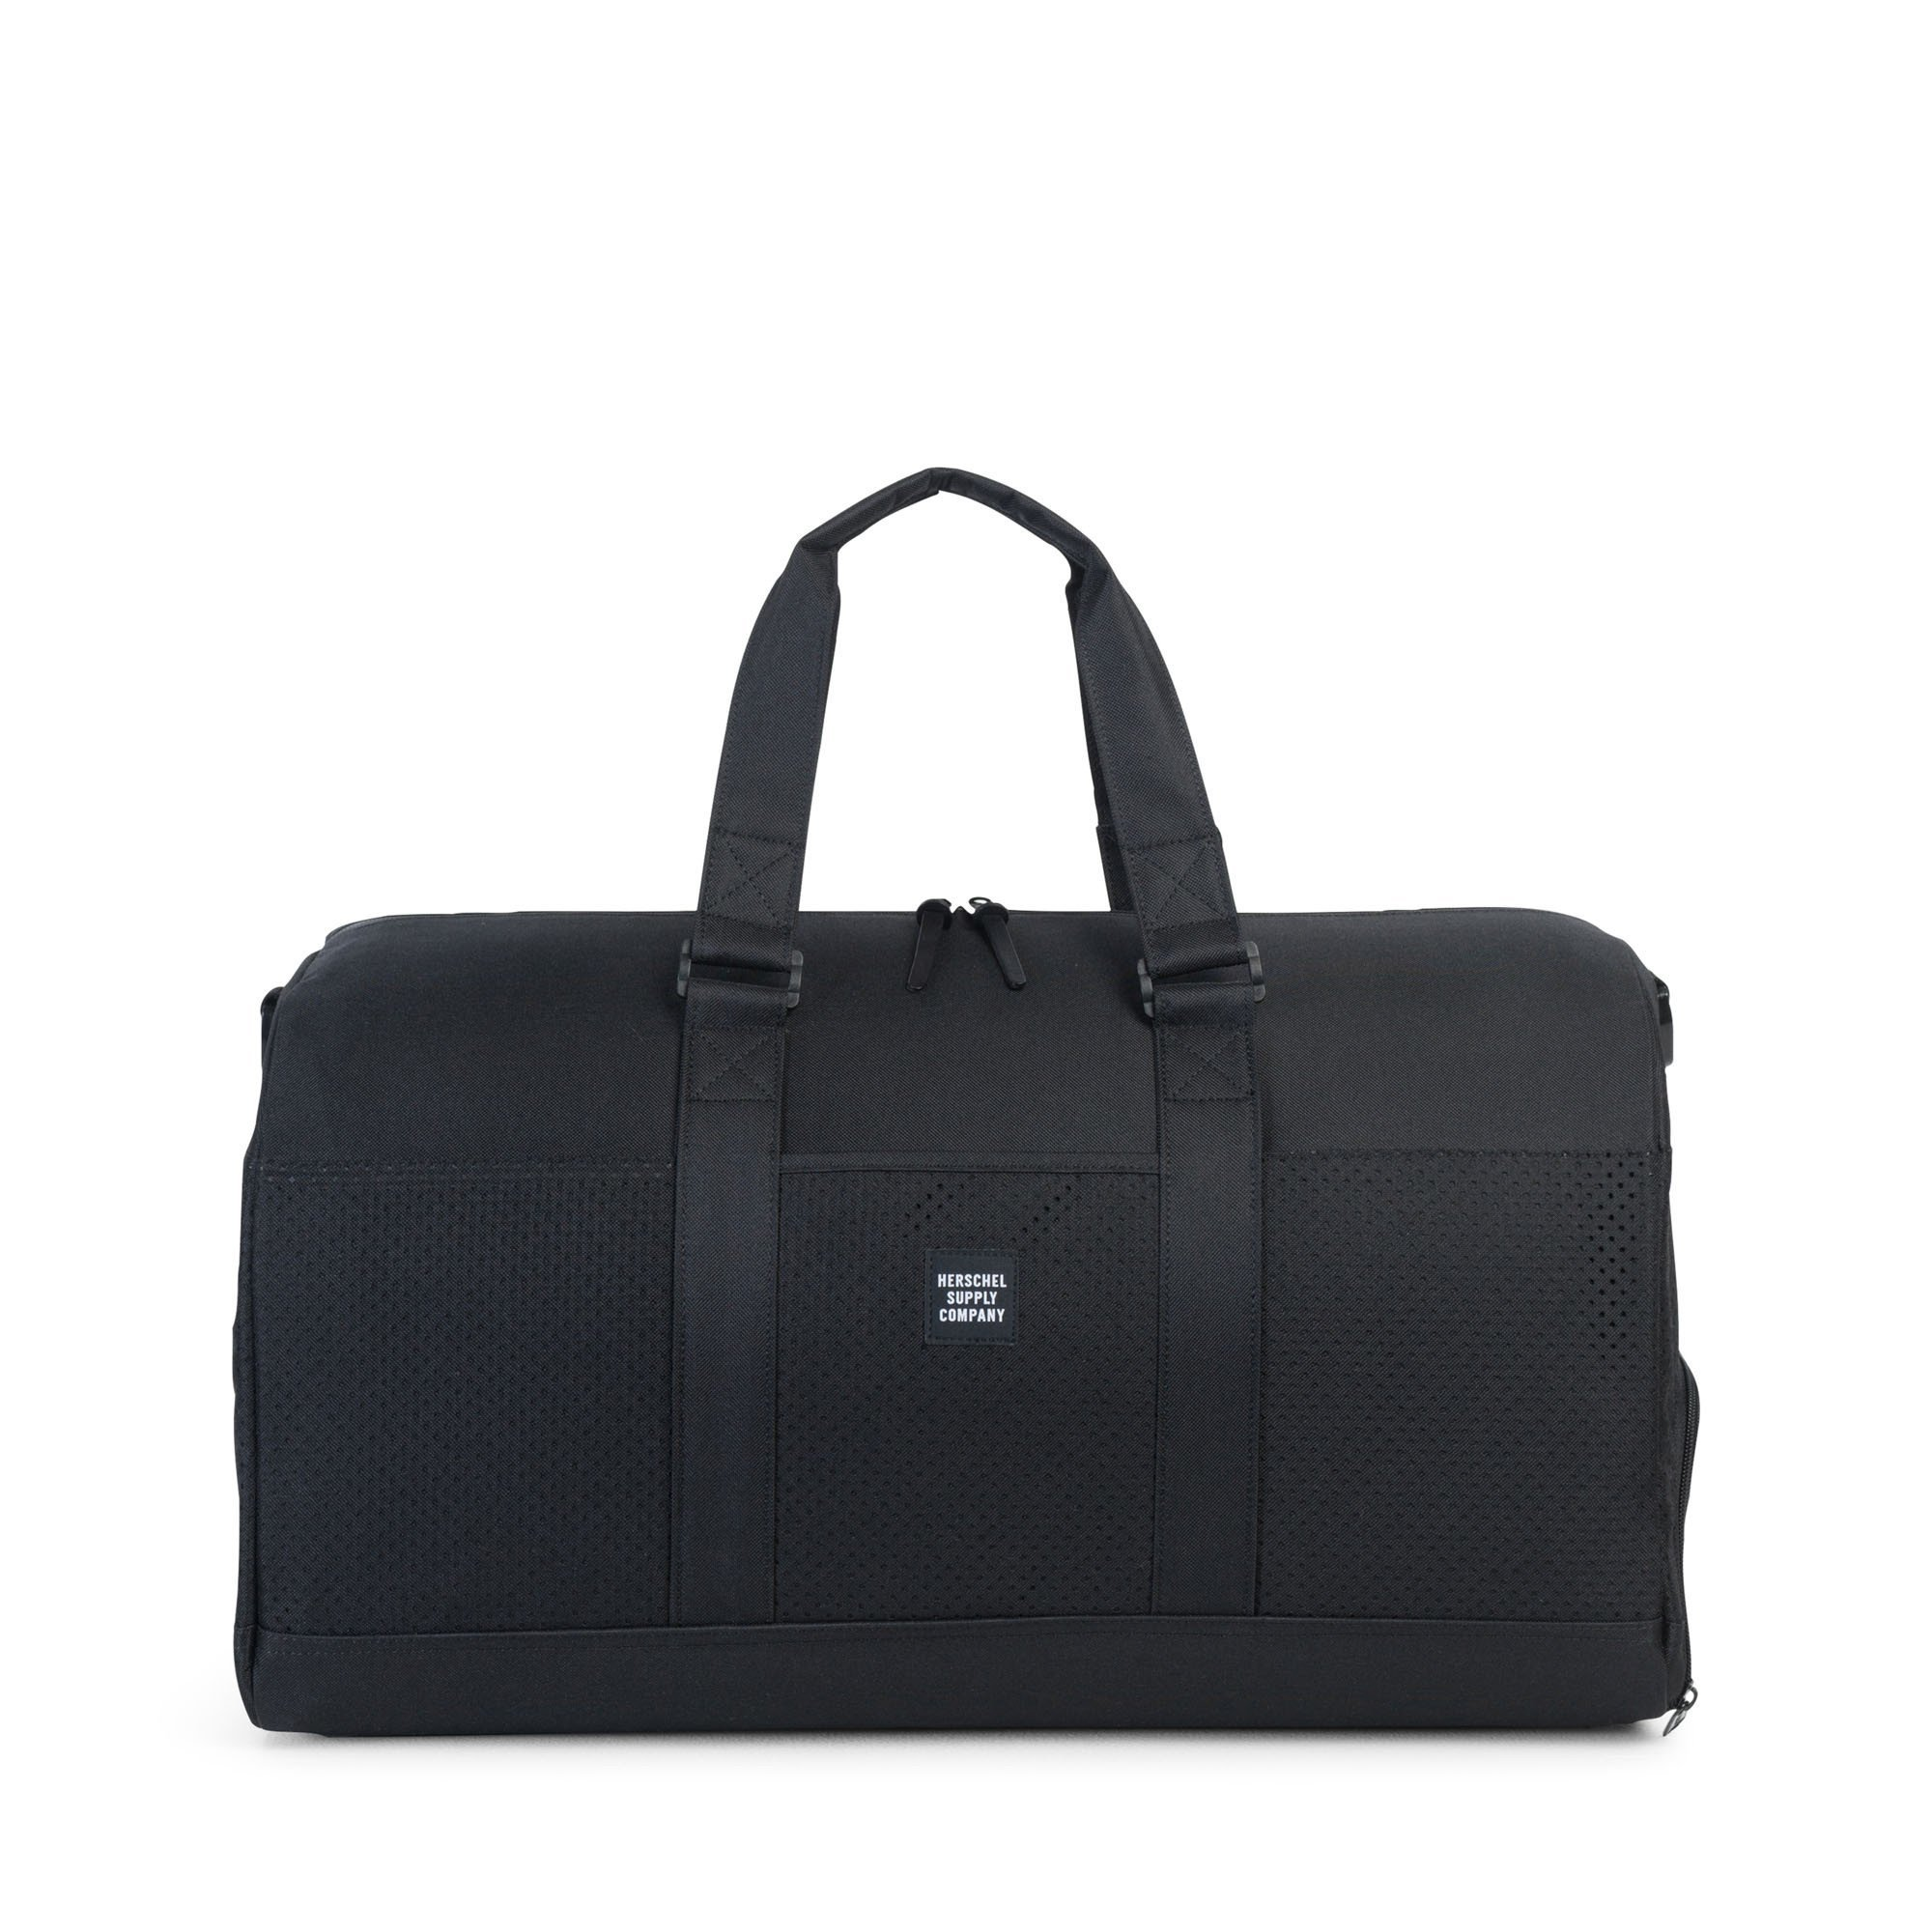 b322ca2338 Herschel Novel Duffle Bag Black Black Perf One Size - Walmart.com